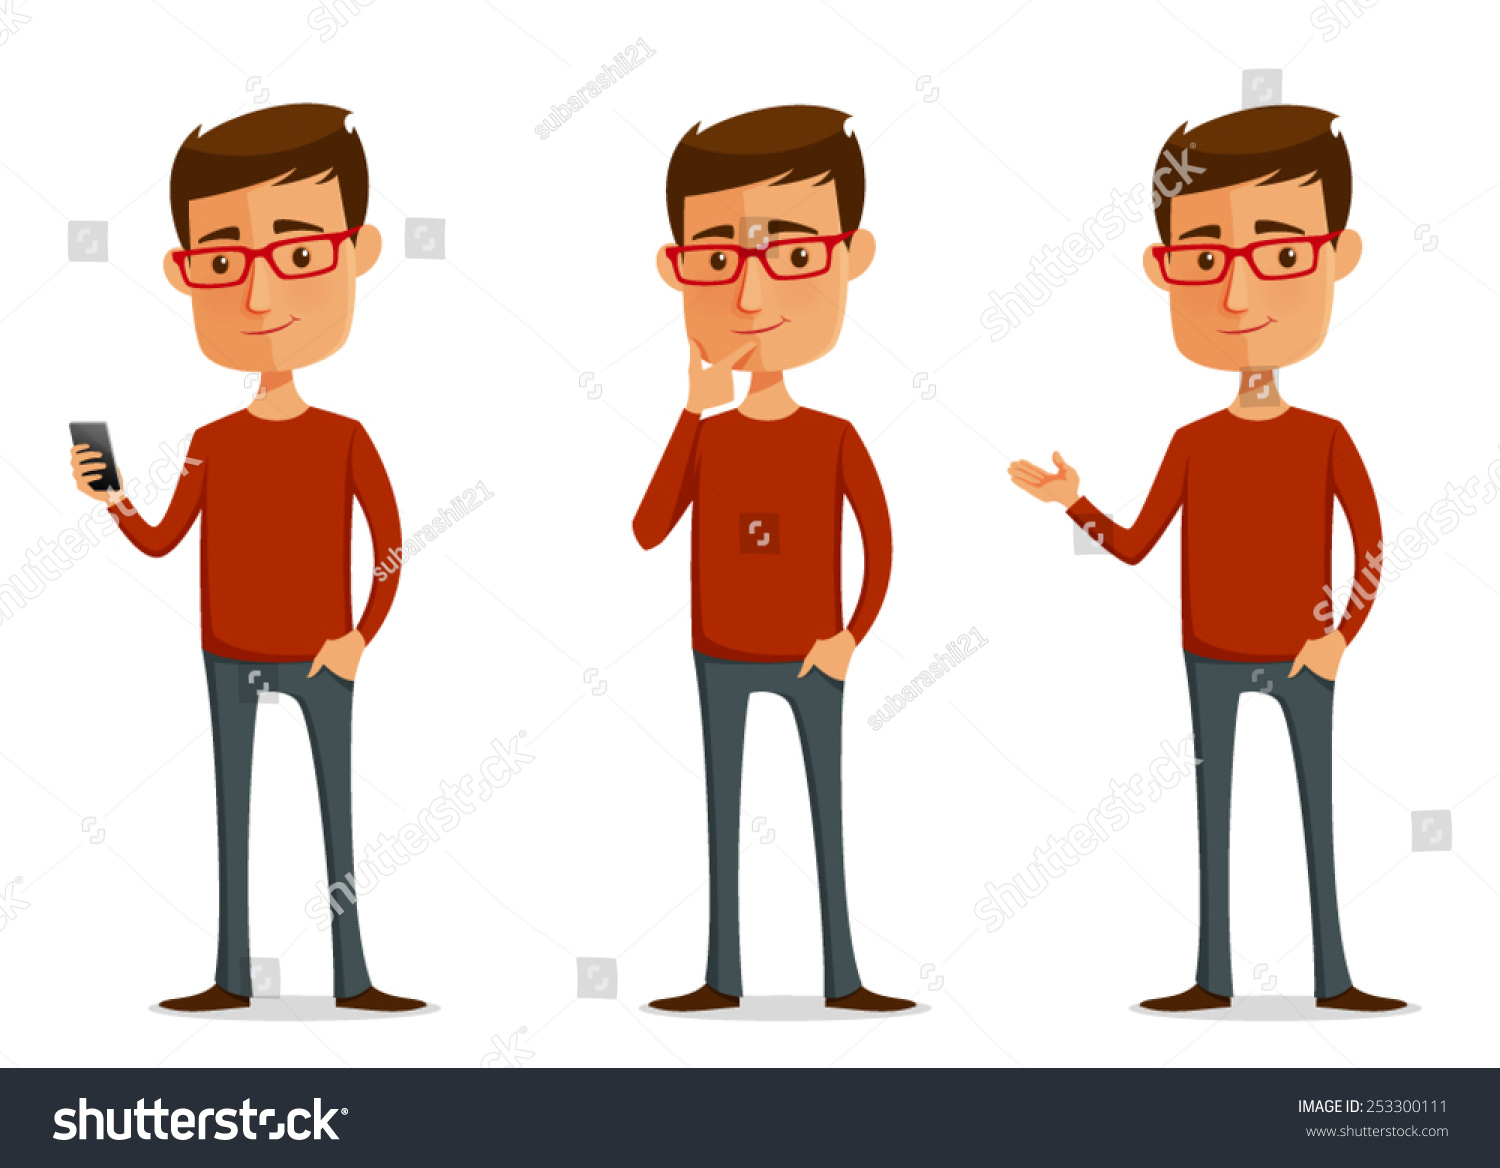 Funny Man with Glasses Clip Art